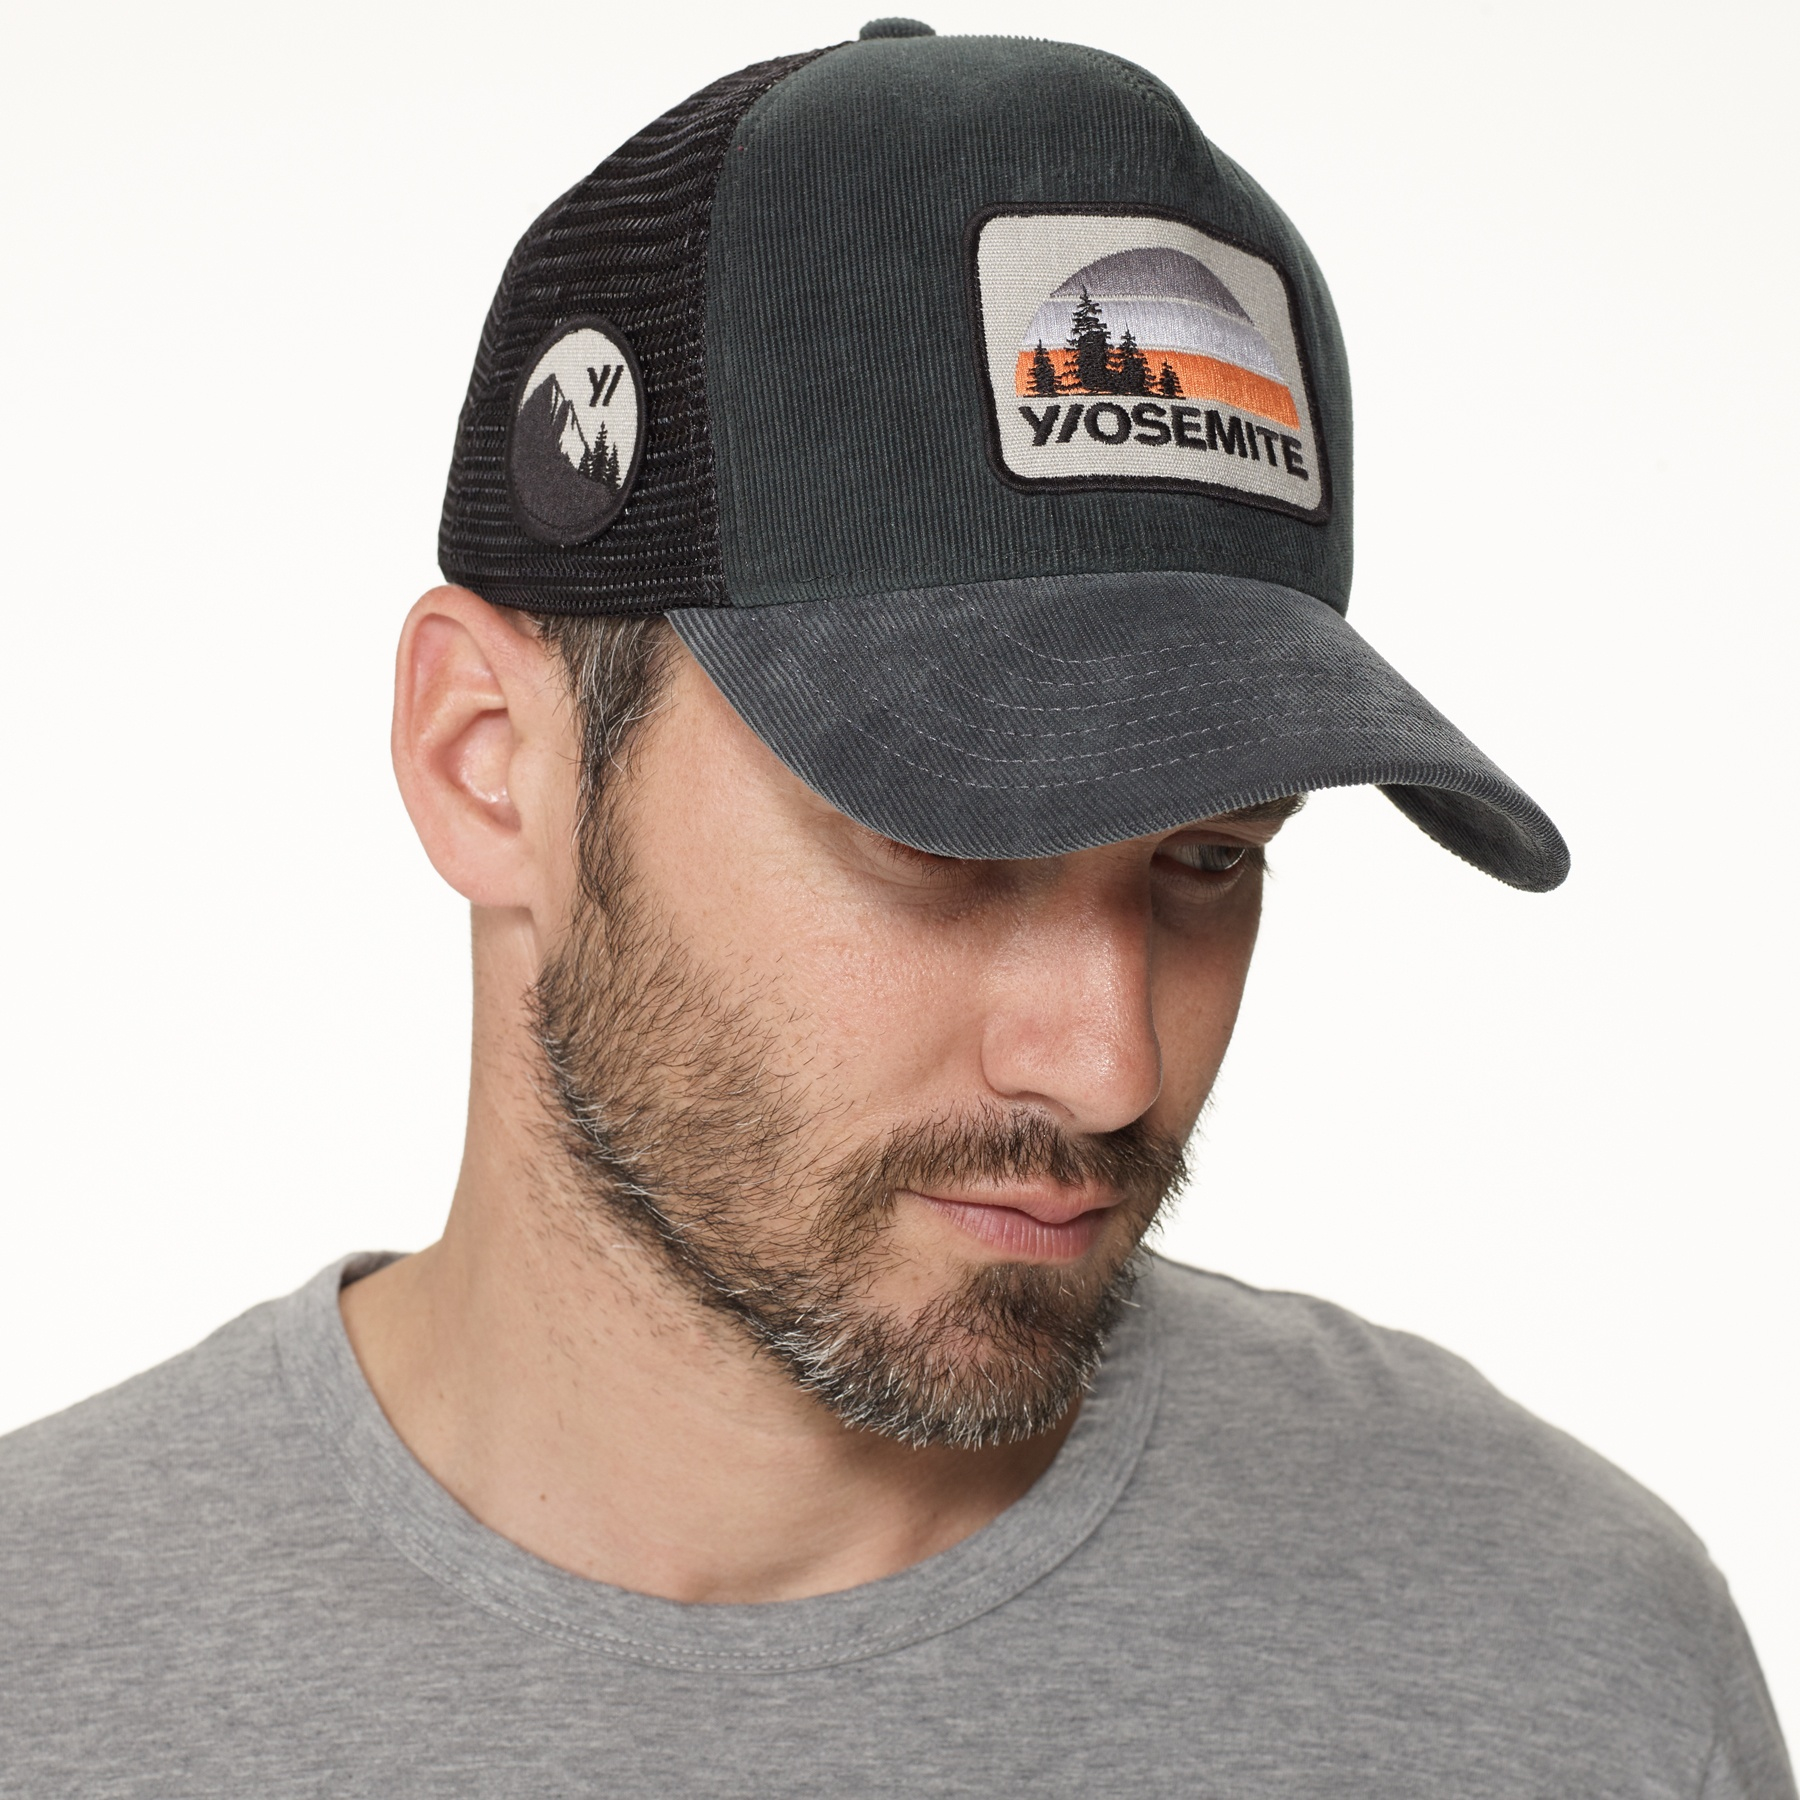 6190cc1dbce James Perse Yosemite Trucker Hat in Black for Men - Lyst